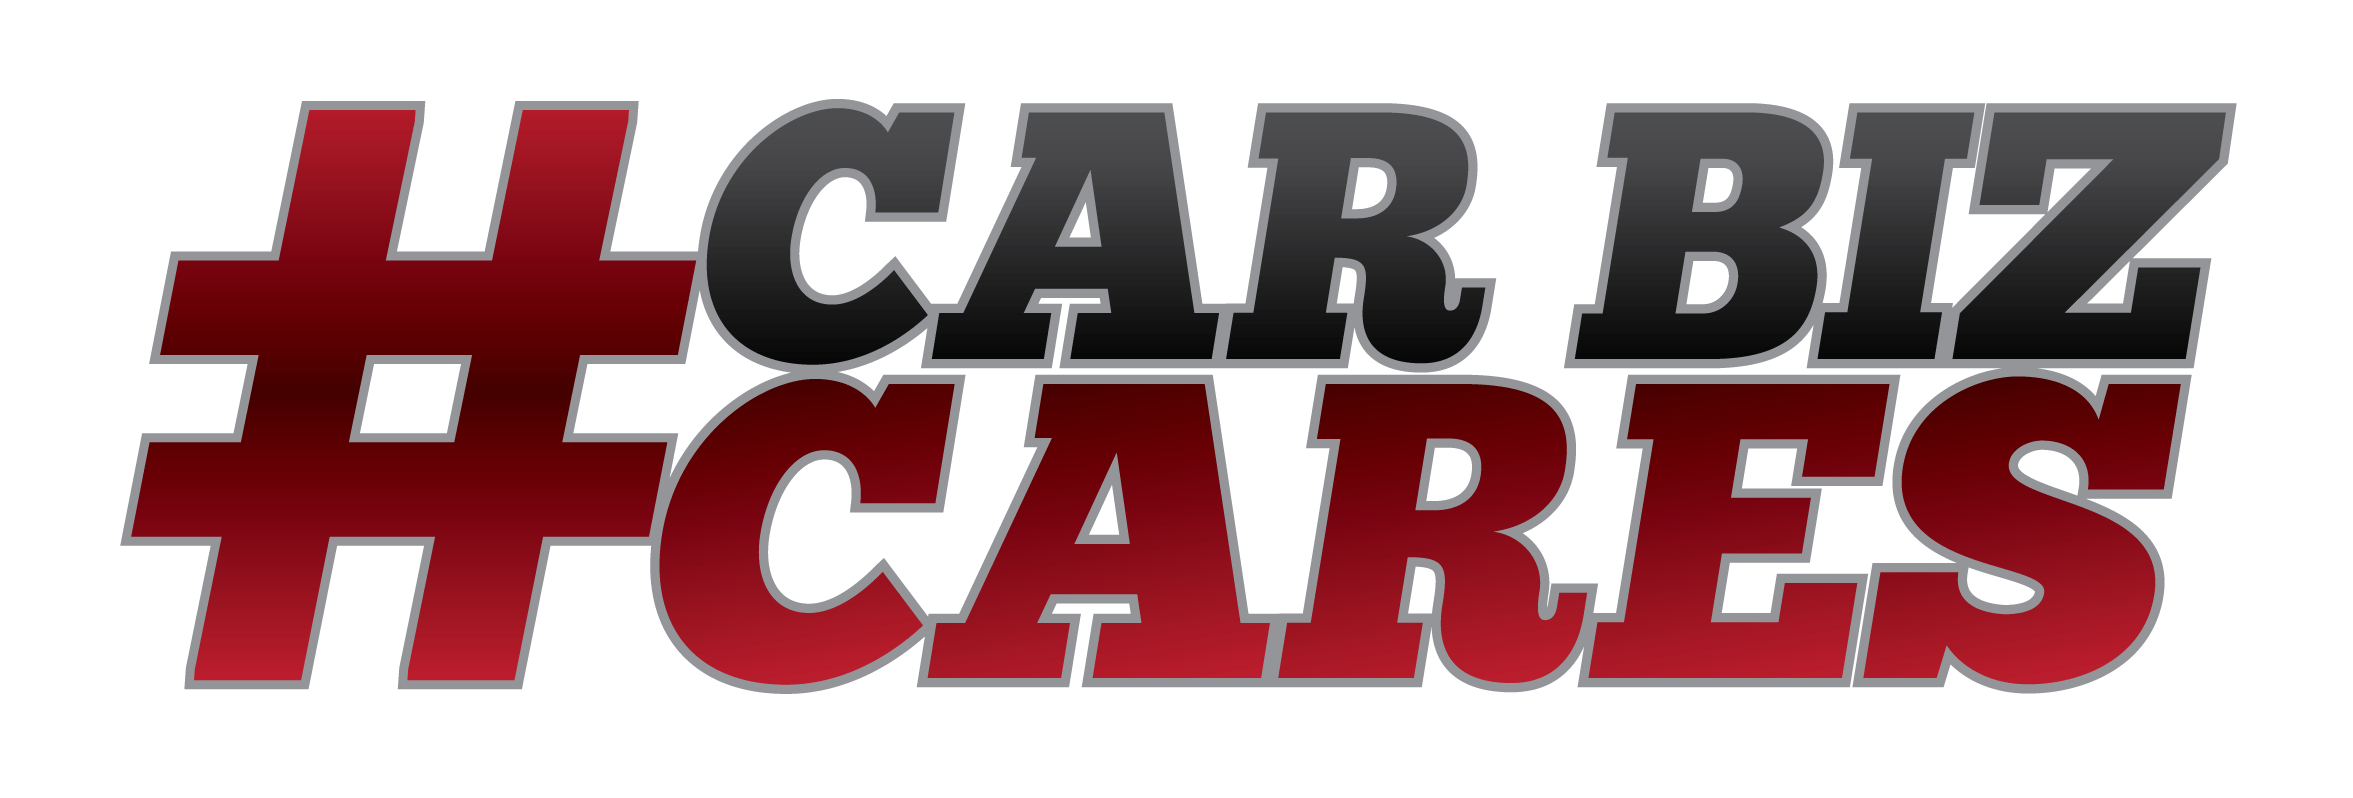 Car-Biz-Cares---Logo-Design-Hashtag2